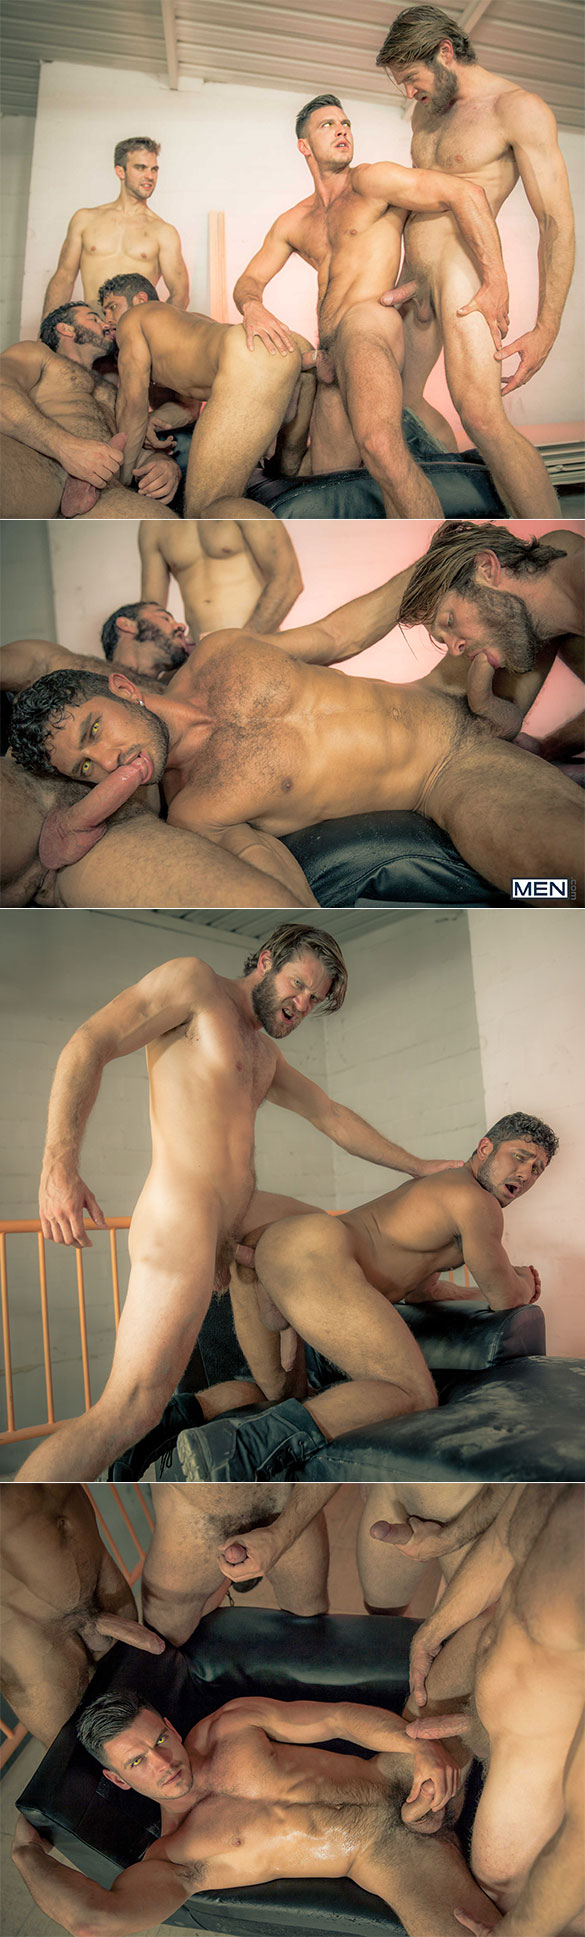 "Men.com: Paddy O'Brian bottoms for Colby Keller, Dato Foland, Gabriel Clark and Jessy Ares in ""Howl, Part 4"""